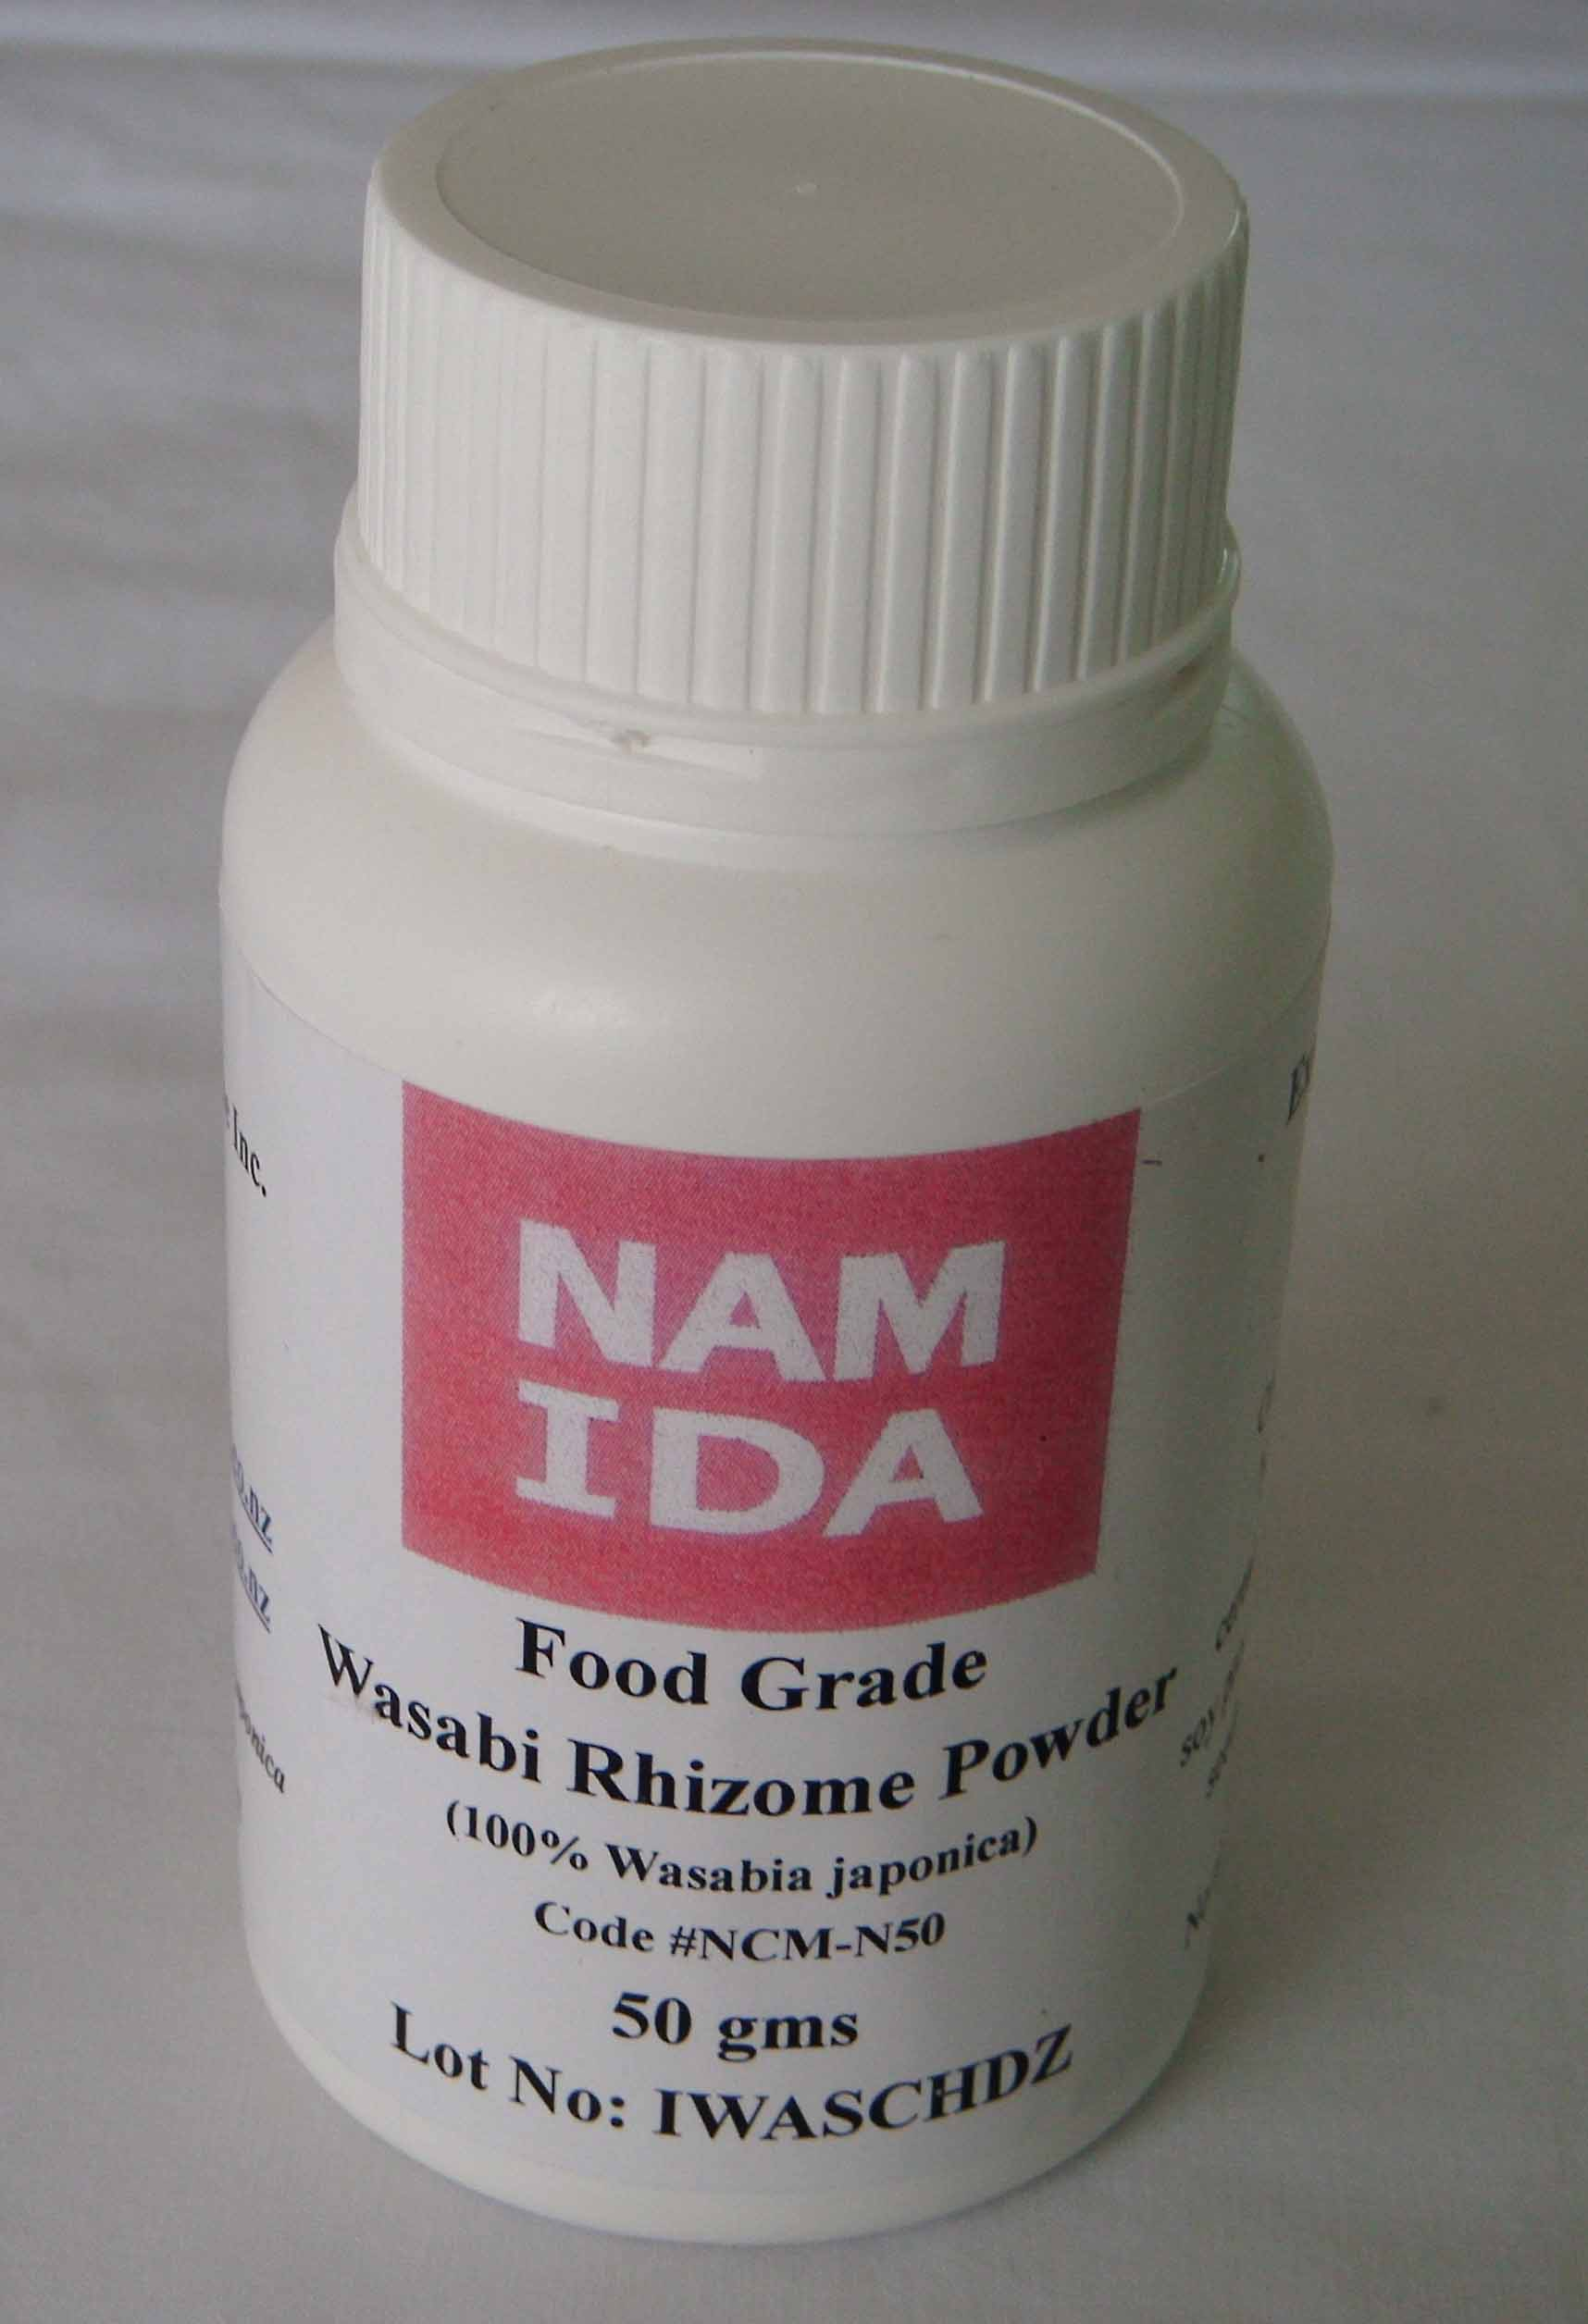 50 gm Namida Wasabia japonica Powder $32.95